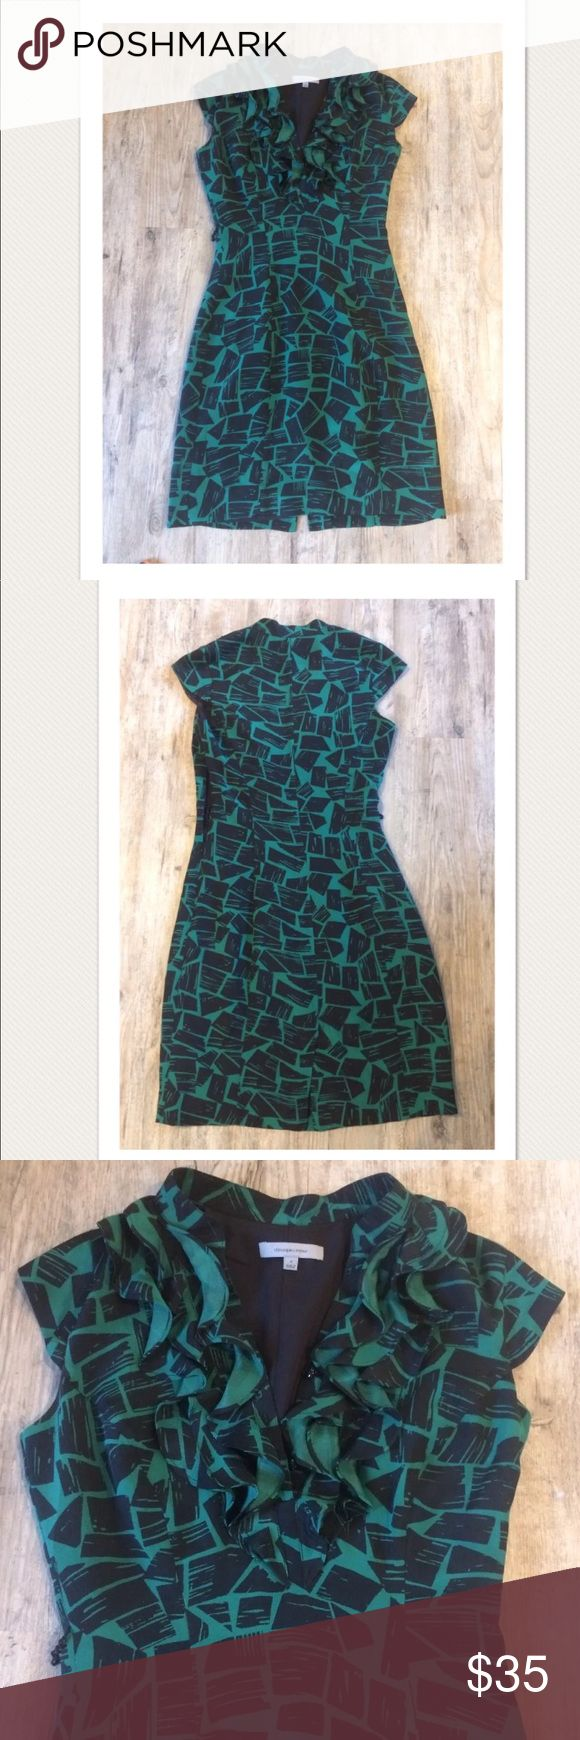 """$295 Classiques Entier for Nordstrom Silk Dress High end department store customer return. Retails for $295 + Tax  Beautiful, lightweight silk dress. NO signs of wear.   Green and black print Ruffle detail with buttons at chest Cap sleeves Zips on side Lined  100% silk  Size 2  Measures approximately: total length 36.5"""" bust across 16.5""""  *Belt tie at waist is missing- easy to add your own if you desire. Has not been cleaned/treated.   PLEASE ASK ANY QUESTIONS BEFORE PURCHASE, THANKS…"""